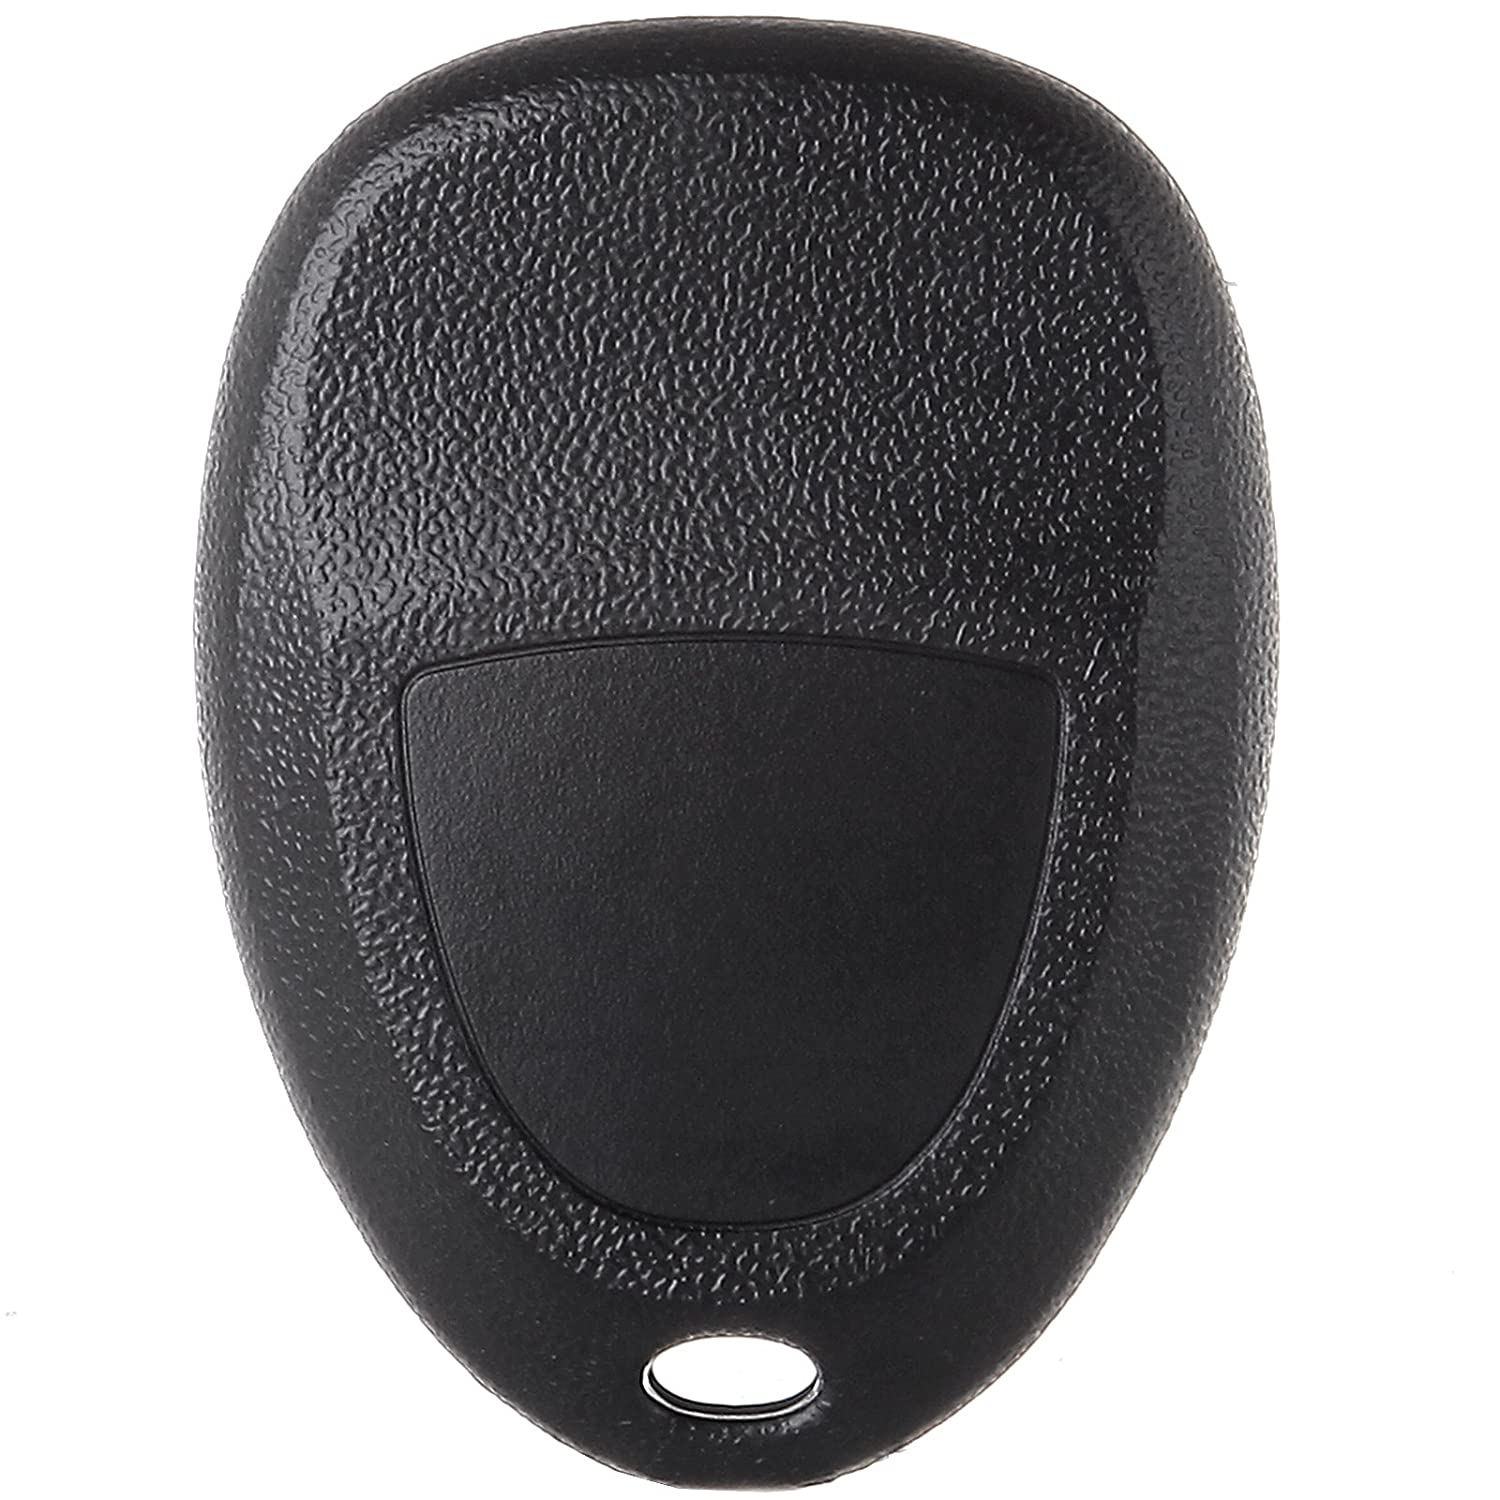 Pack of 2 ECCPP Keyless Entry Remote Key Fob 6 Buttons Replacement fit for Cadillac Escalade//Chevrolet Suburban 1500 2500 Tahoe//GMC Yukon XL 1500 2500 OUC60270